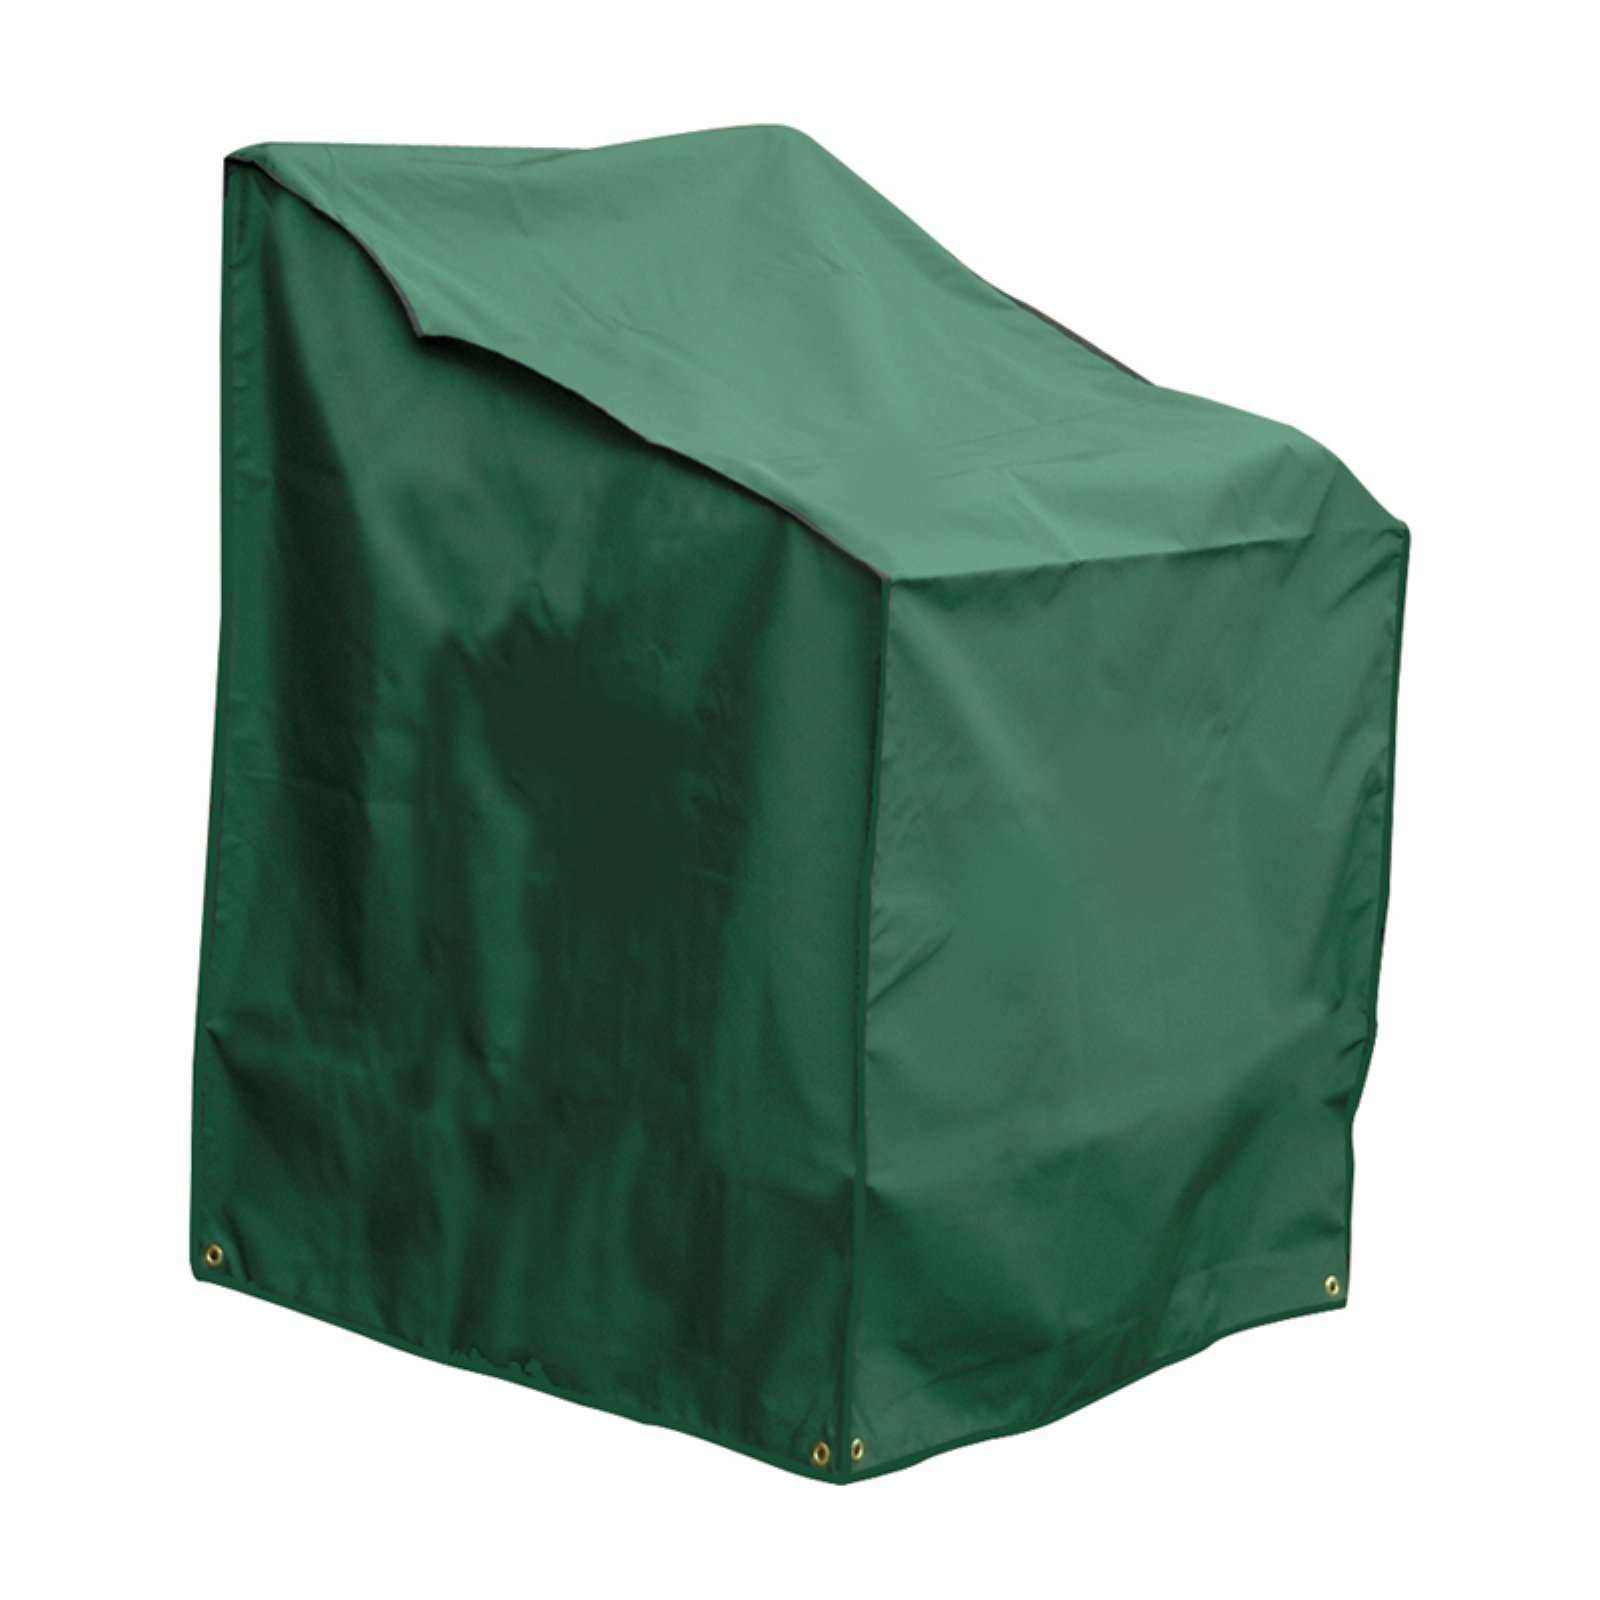 Bosmere C640 Wicker Chair Cover - 38 x 36 in. - Green